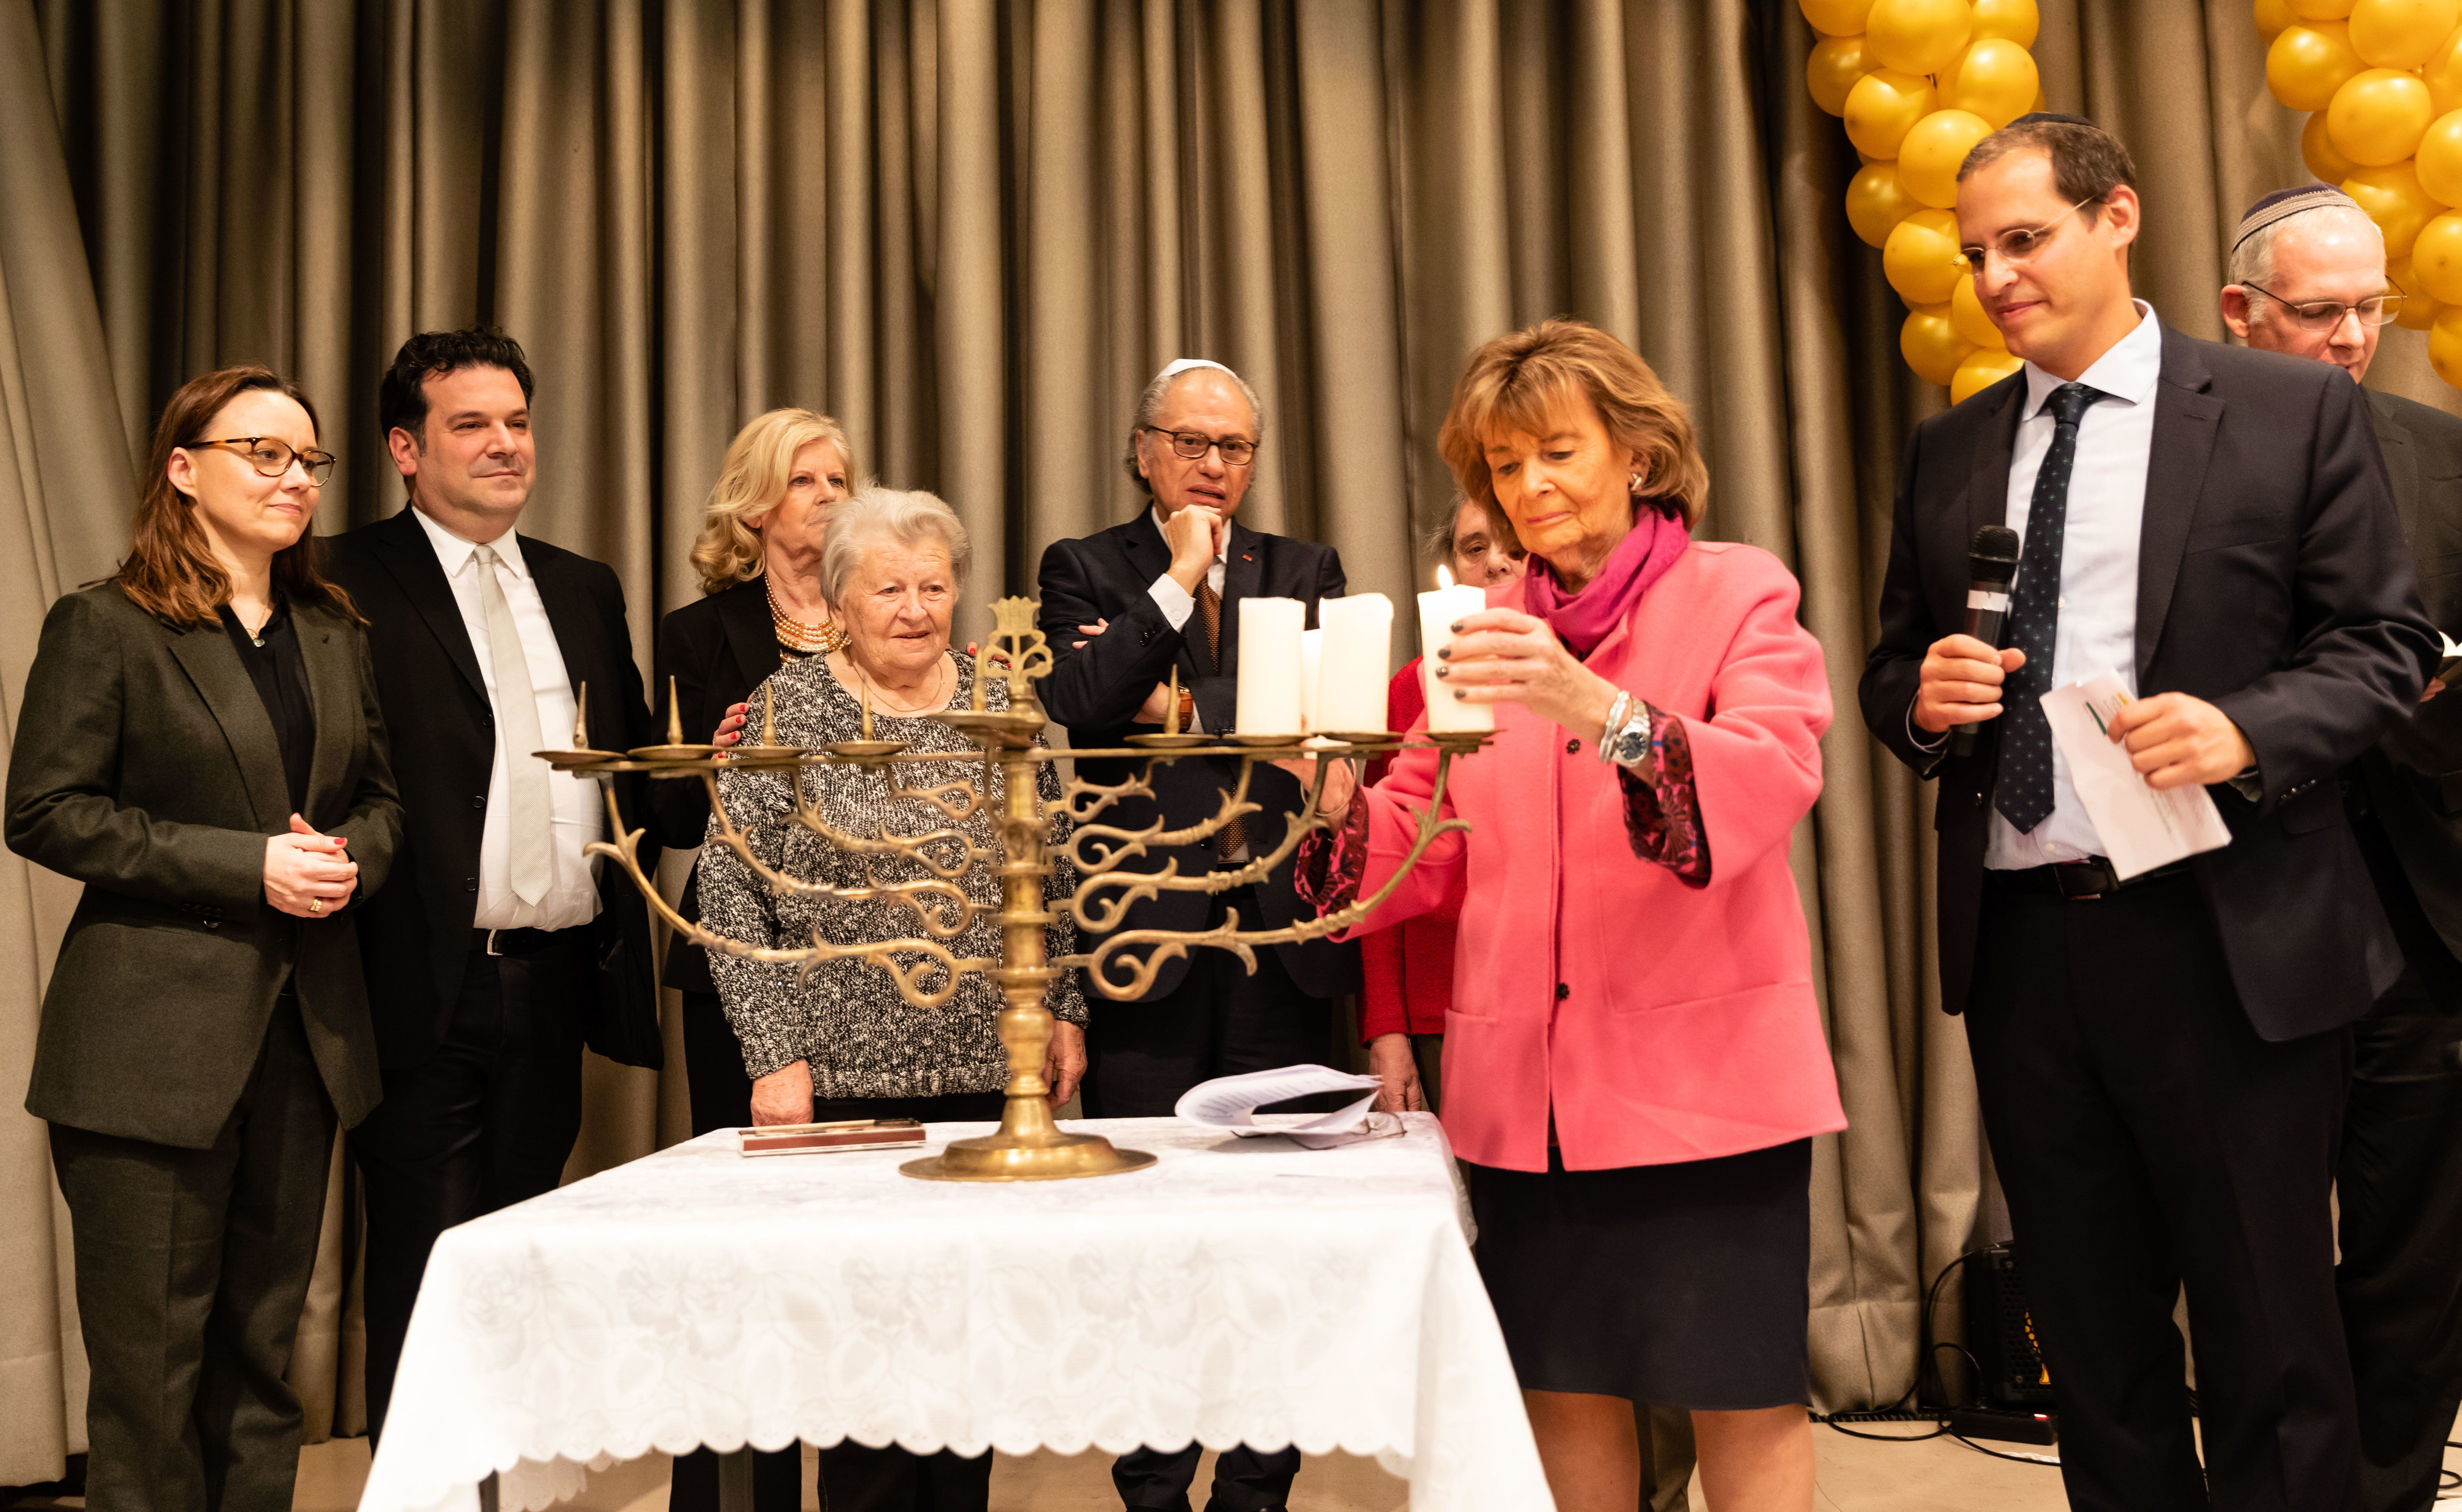 Hundreds Of Holocaust Survivors Speak Up About Anti-Semitism At Global Hanukkah Event